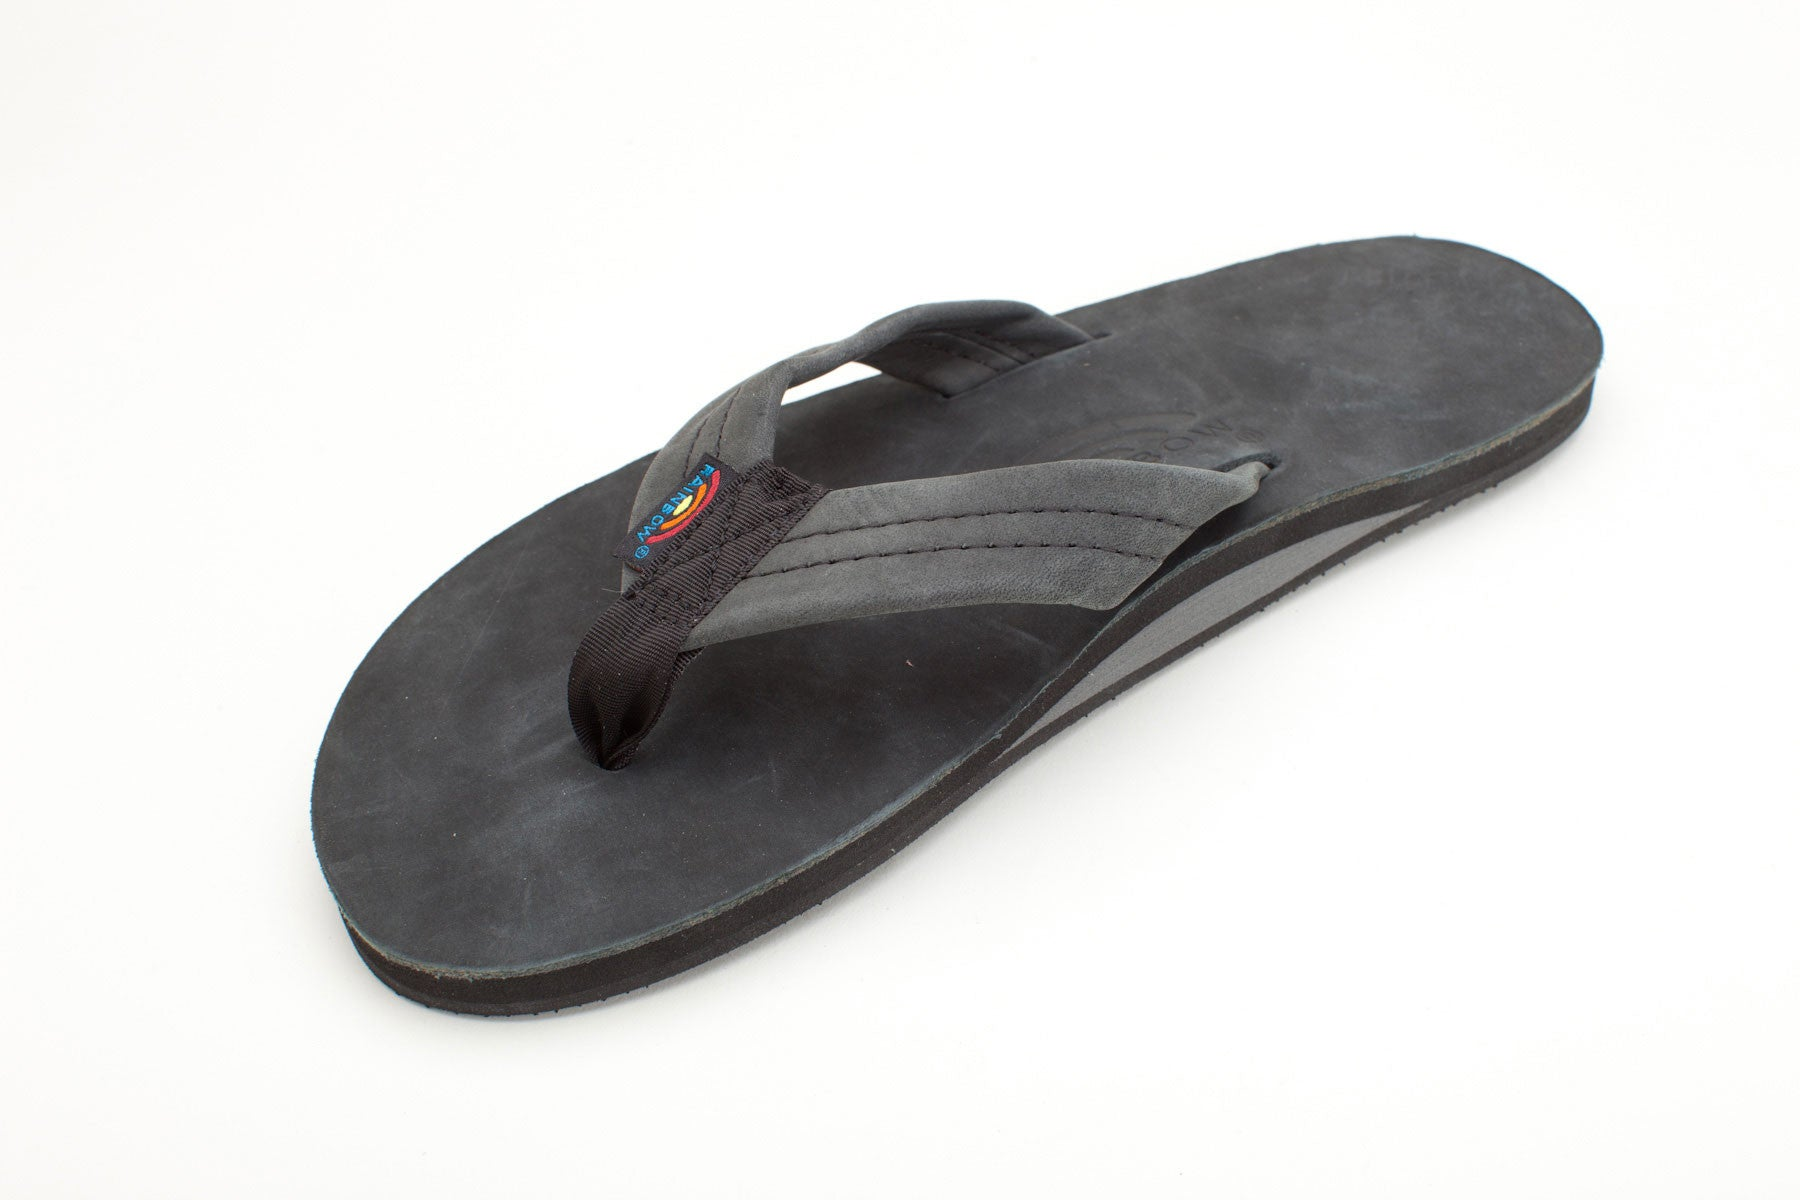 Rainbow Sandals Men's Black Premier Leather Single Layer with Arch Support